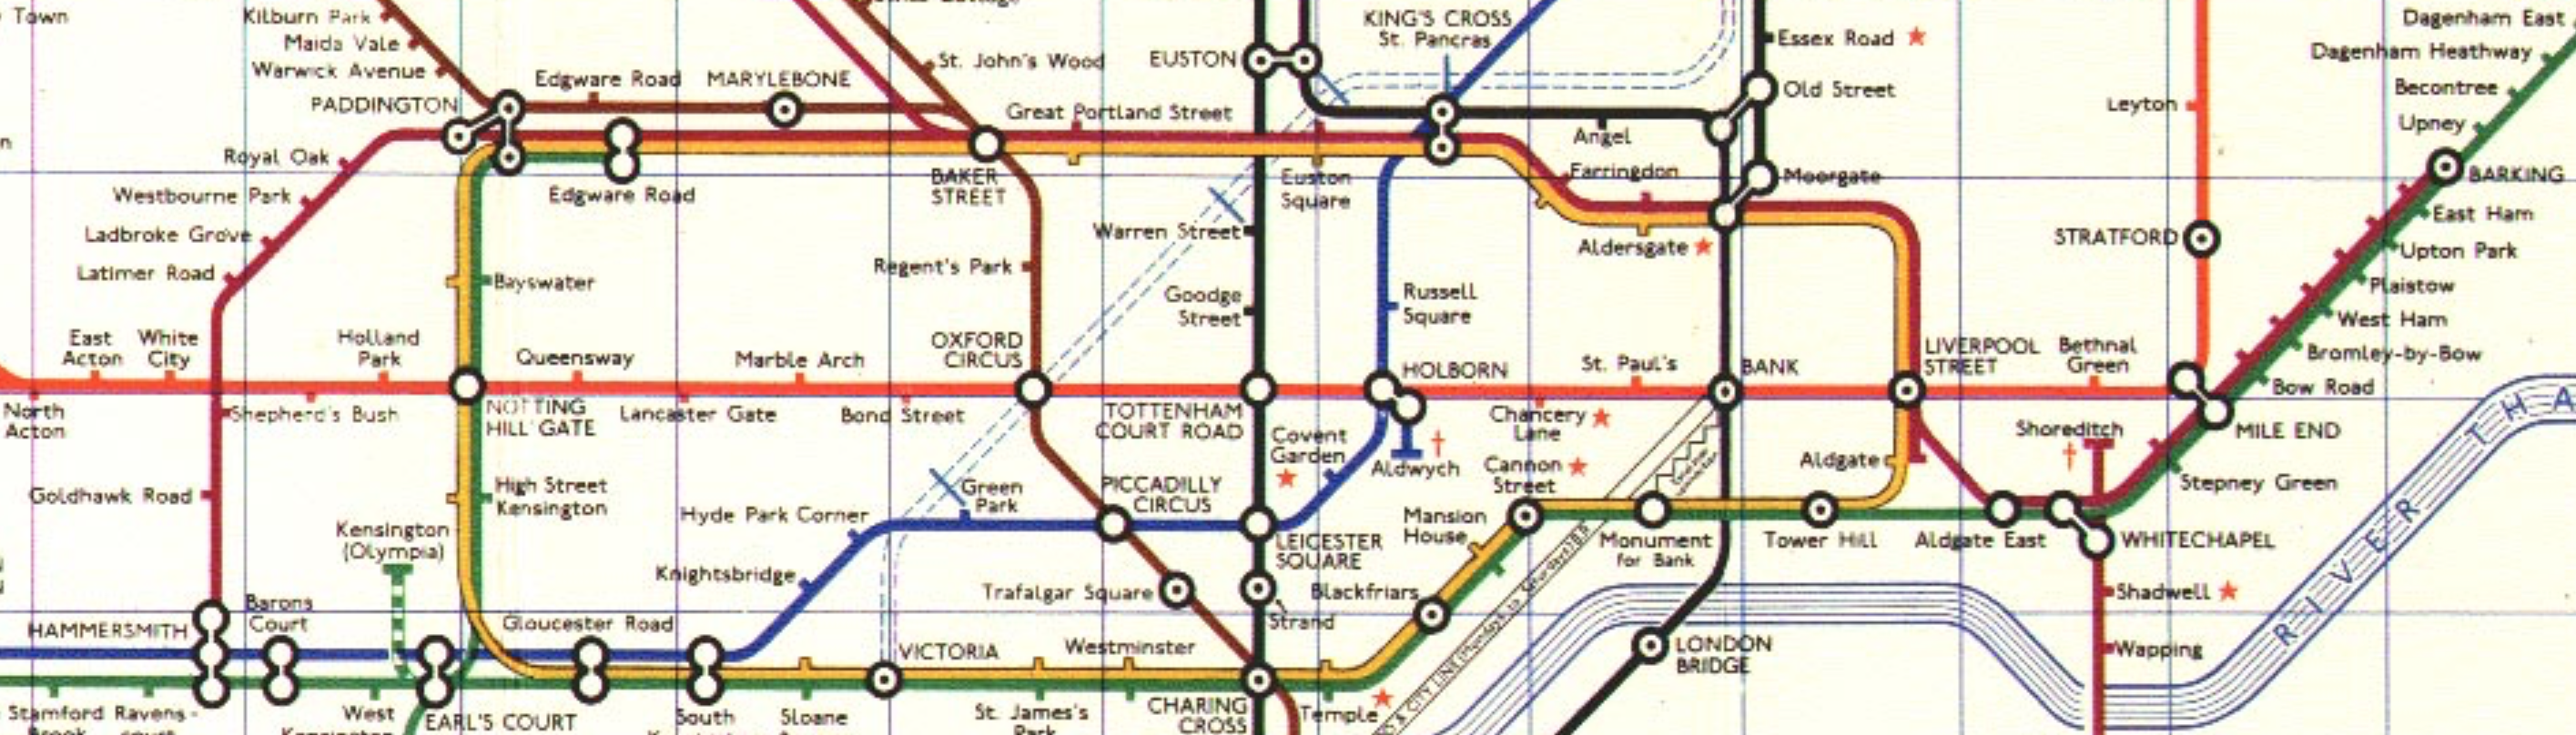 1968 tube map showing the route of the Hammersmith & City line in the days when it was covered by the Metropolitan line.